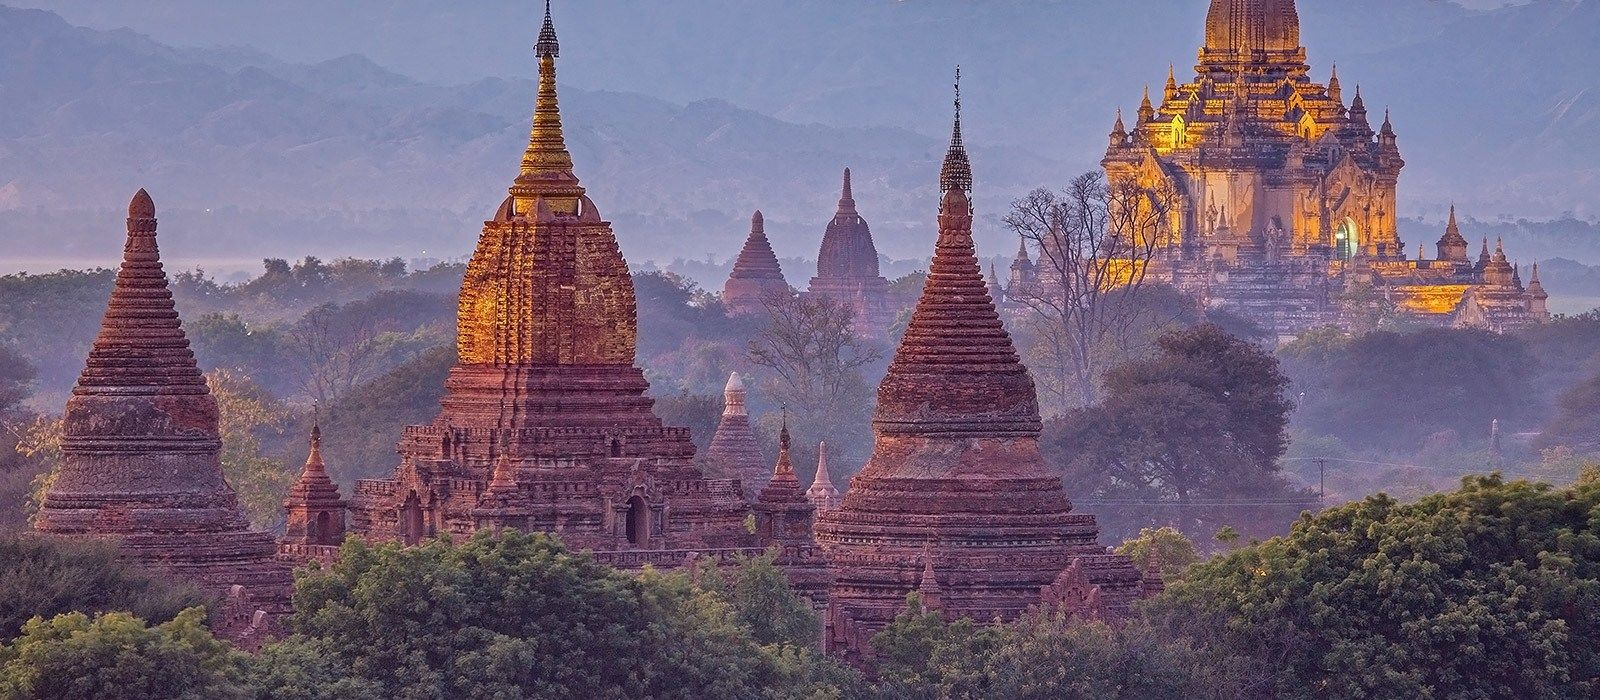 Myanmar: Temples, Rivers and Relaxation Tour Trip 4